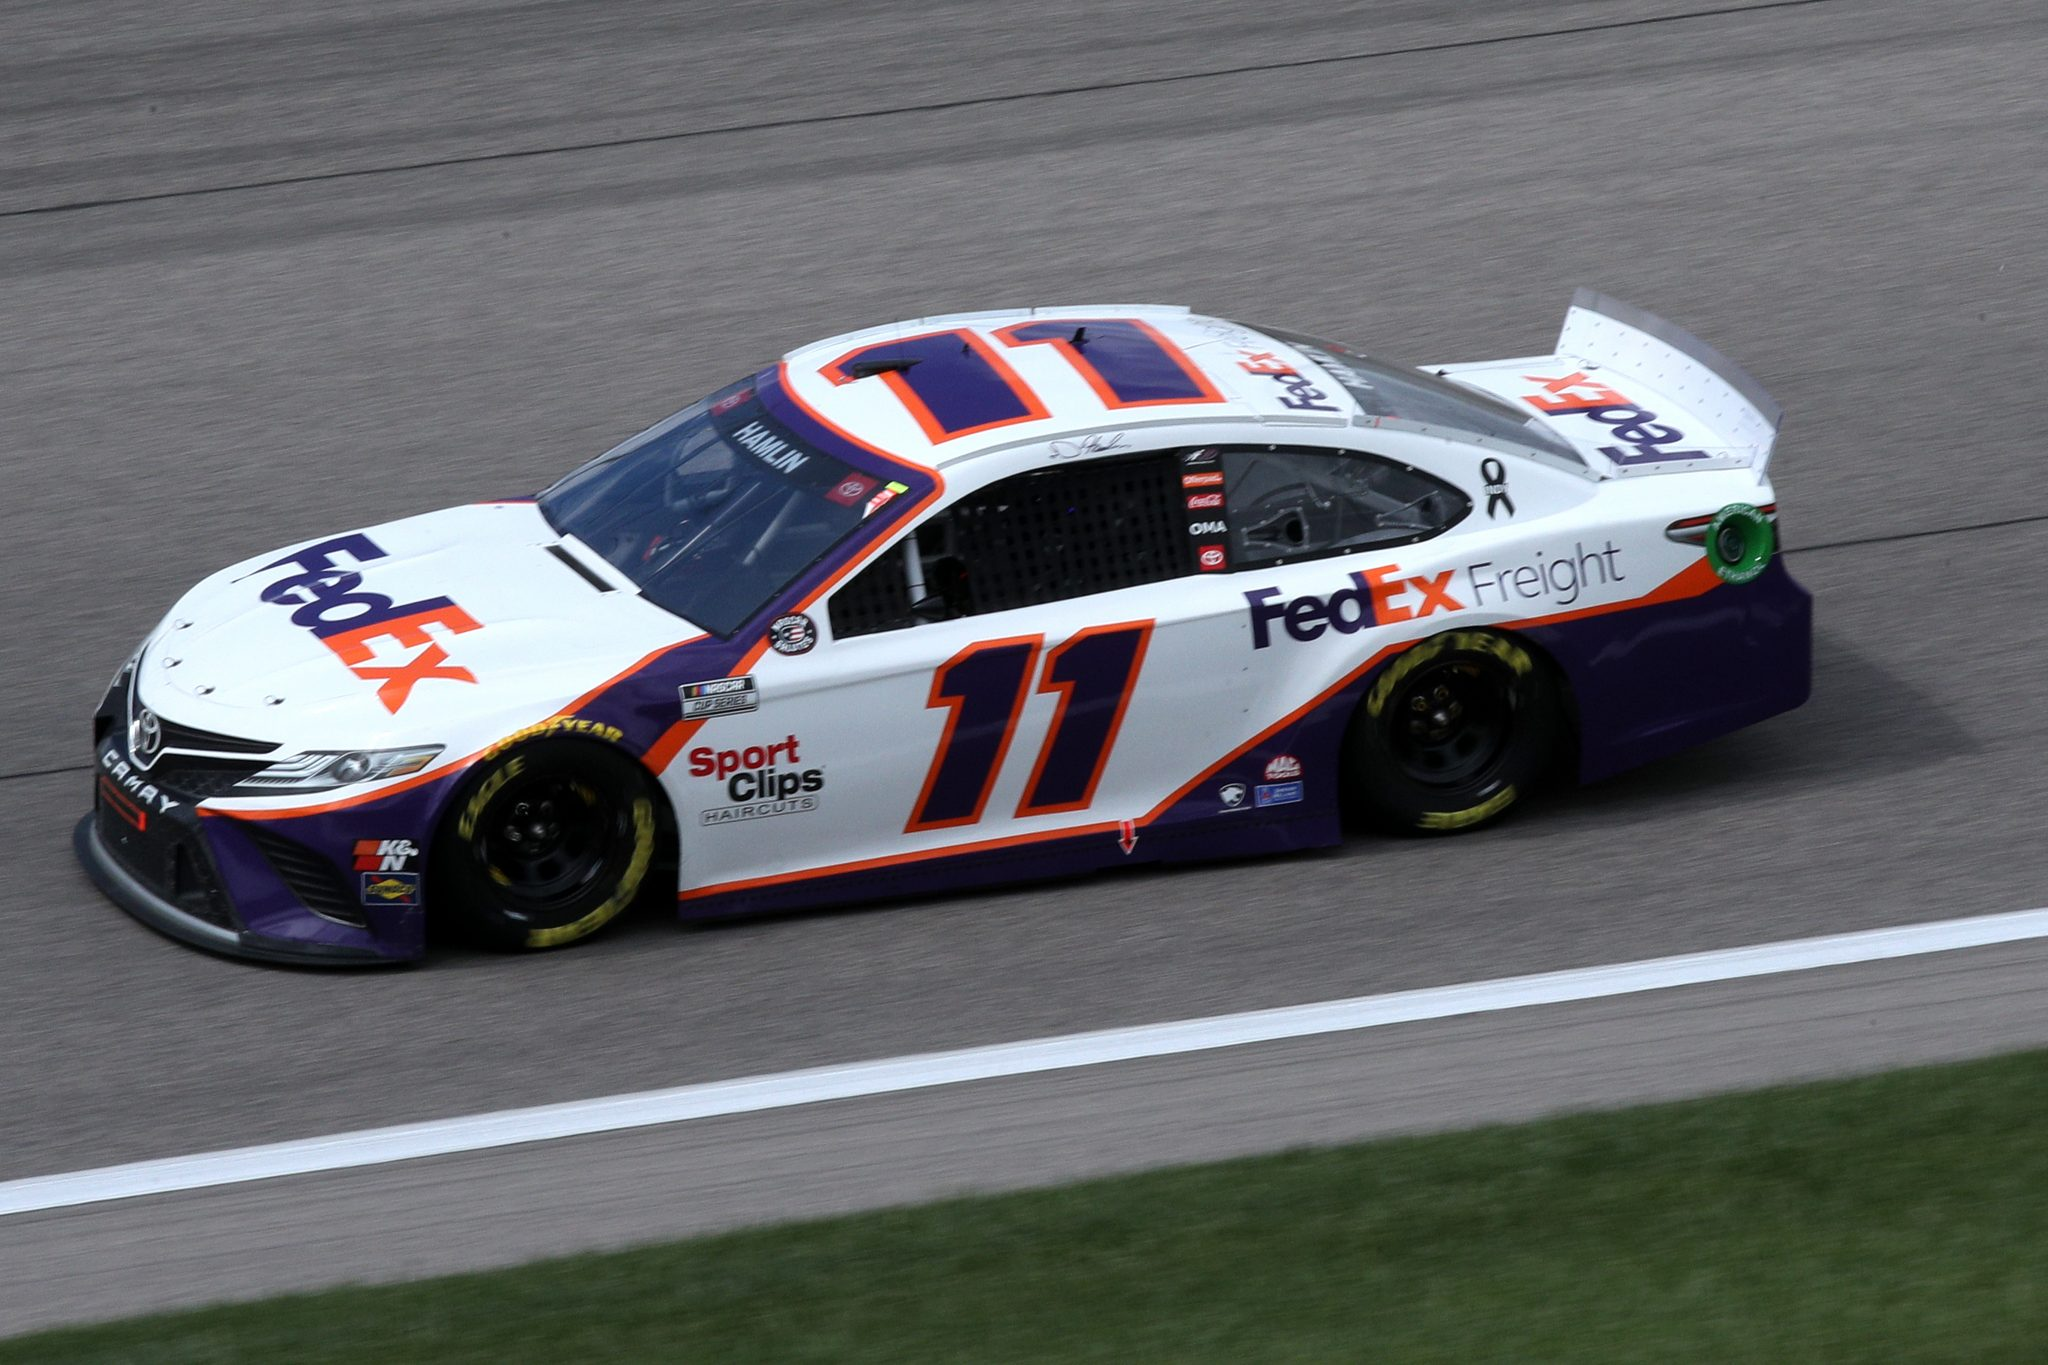 KANSAS CITY, KANSAS - MAY 02: Denny Hamlin, driver of the #11 FedEx Freight Toyota, drives during the NASCAR Cup Series Buschy McBusch Race 400 at Kansas Speedway on May 02, 2021 in Kansas City, Kansas. (Photo by Sean Gardner/Getty Images) | Getty Images